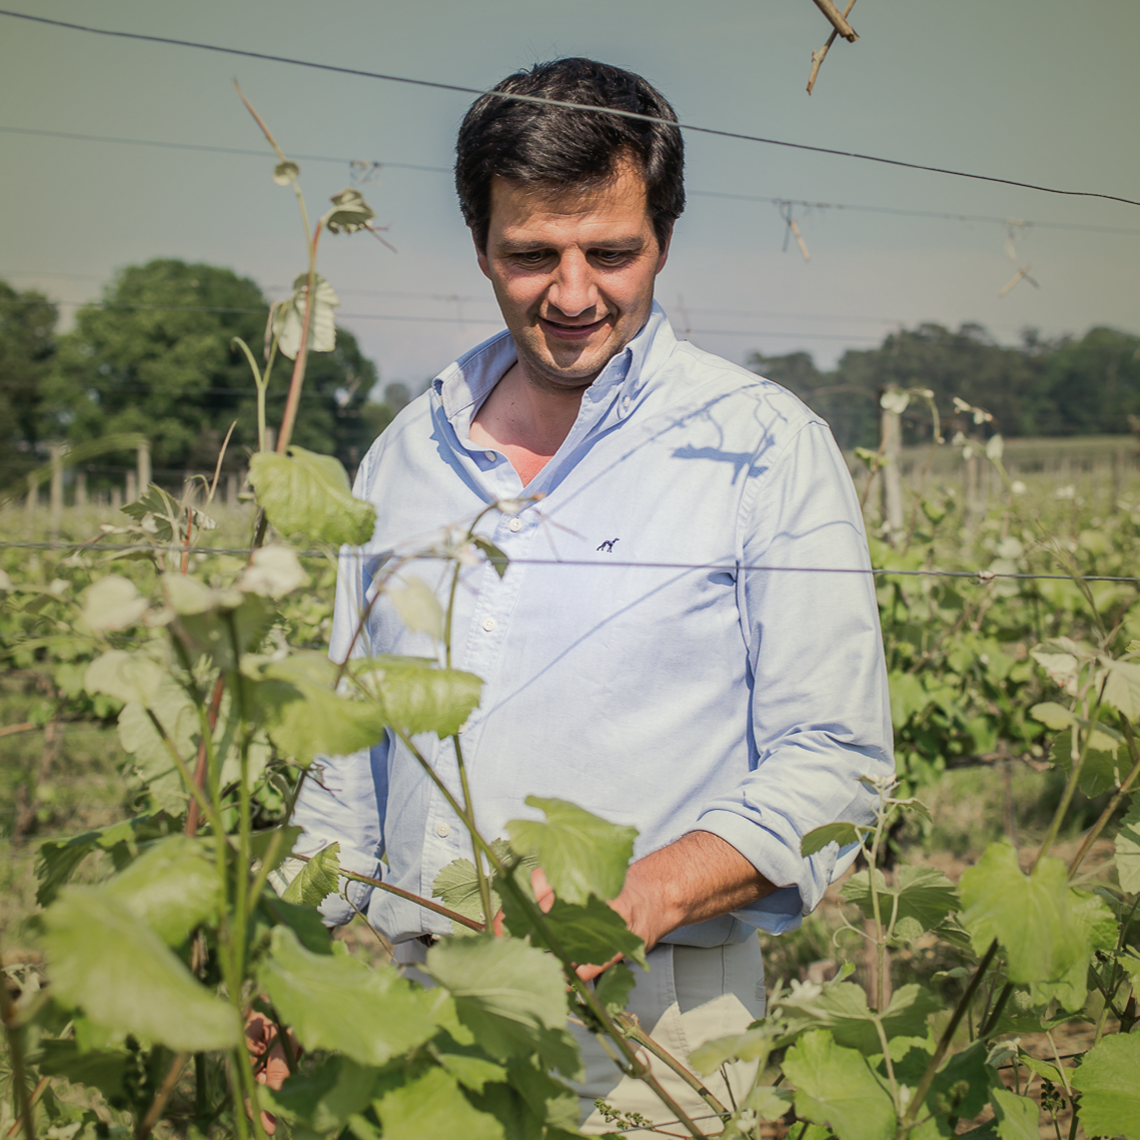 Meet our Director of Viticulture, Pedro Maria Barbosa